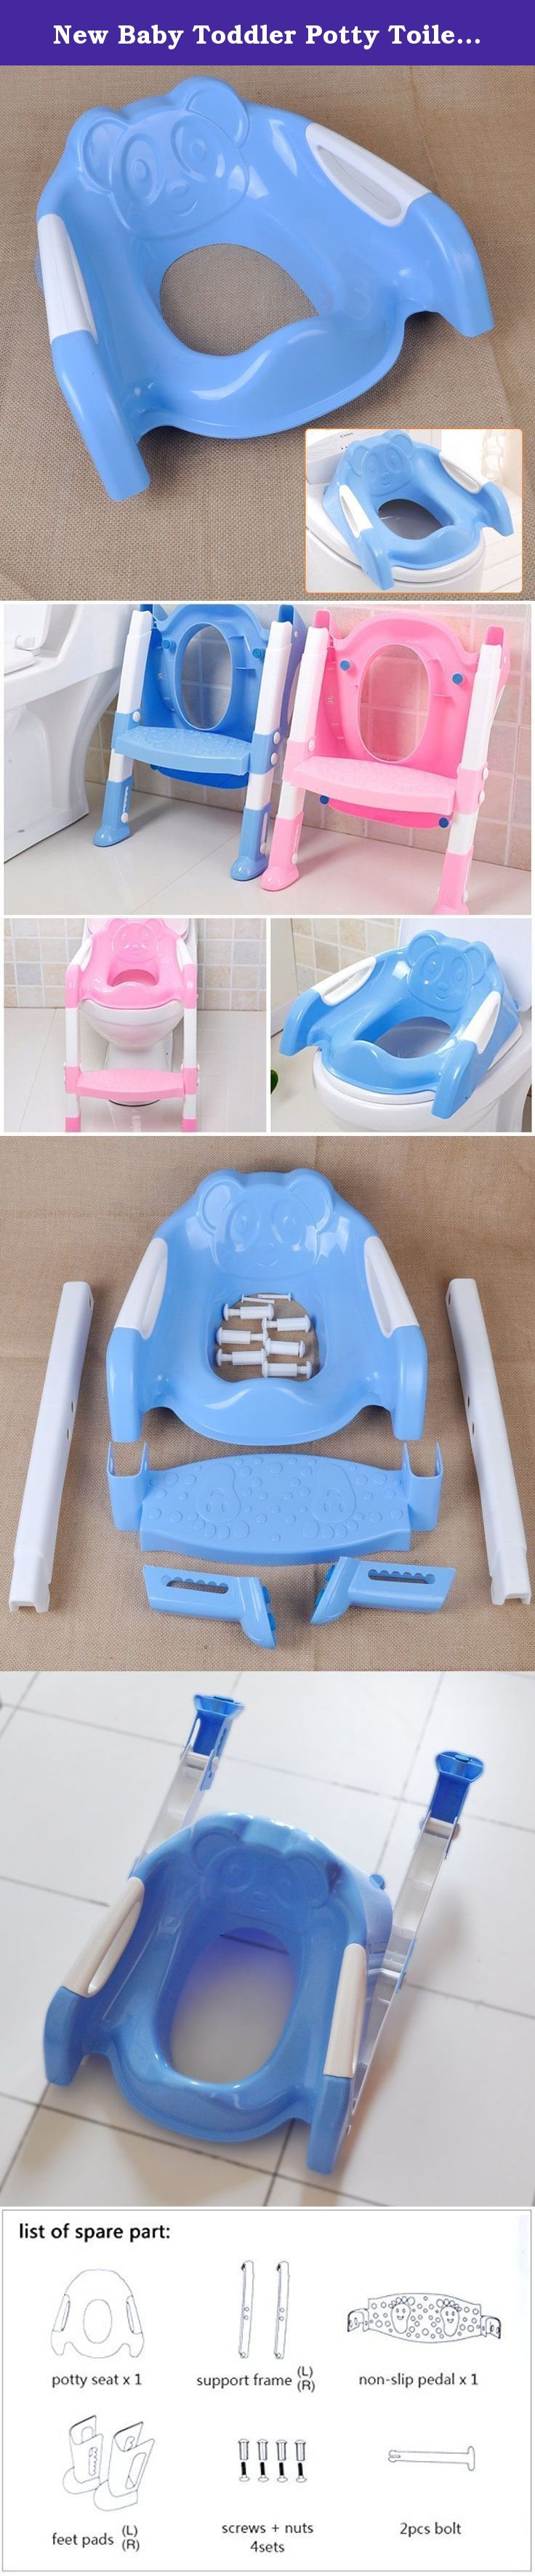 New Baby Toddler Potty Toilet Trainer Safety Seat Chair Step with Adjustable Ladder Infant Toilet Training Non-slip Folding Seat (blue). 1) Seat handles on either side for safety. 2) Seat attaches to the toilet seat. 3) 2 point height adjustable step with adjustable height feet. 4) Seat cushion and ladder feet cushion are designed with non-slip pad, effectively prevent the sliding. 5) It can be folded away easily, save your storage space. Note: 1.Please allow 1-3mm error due to manual...